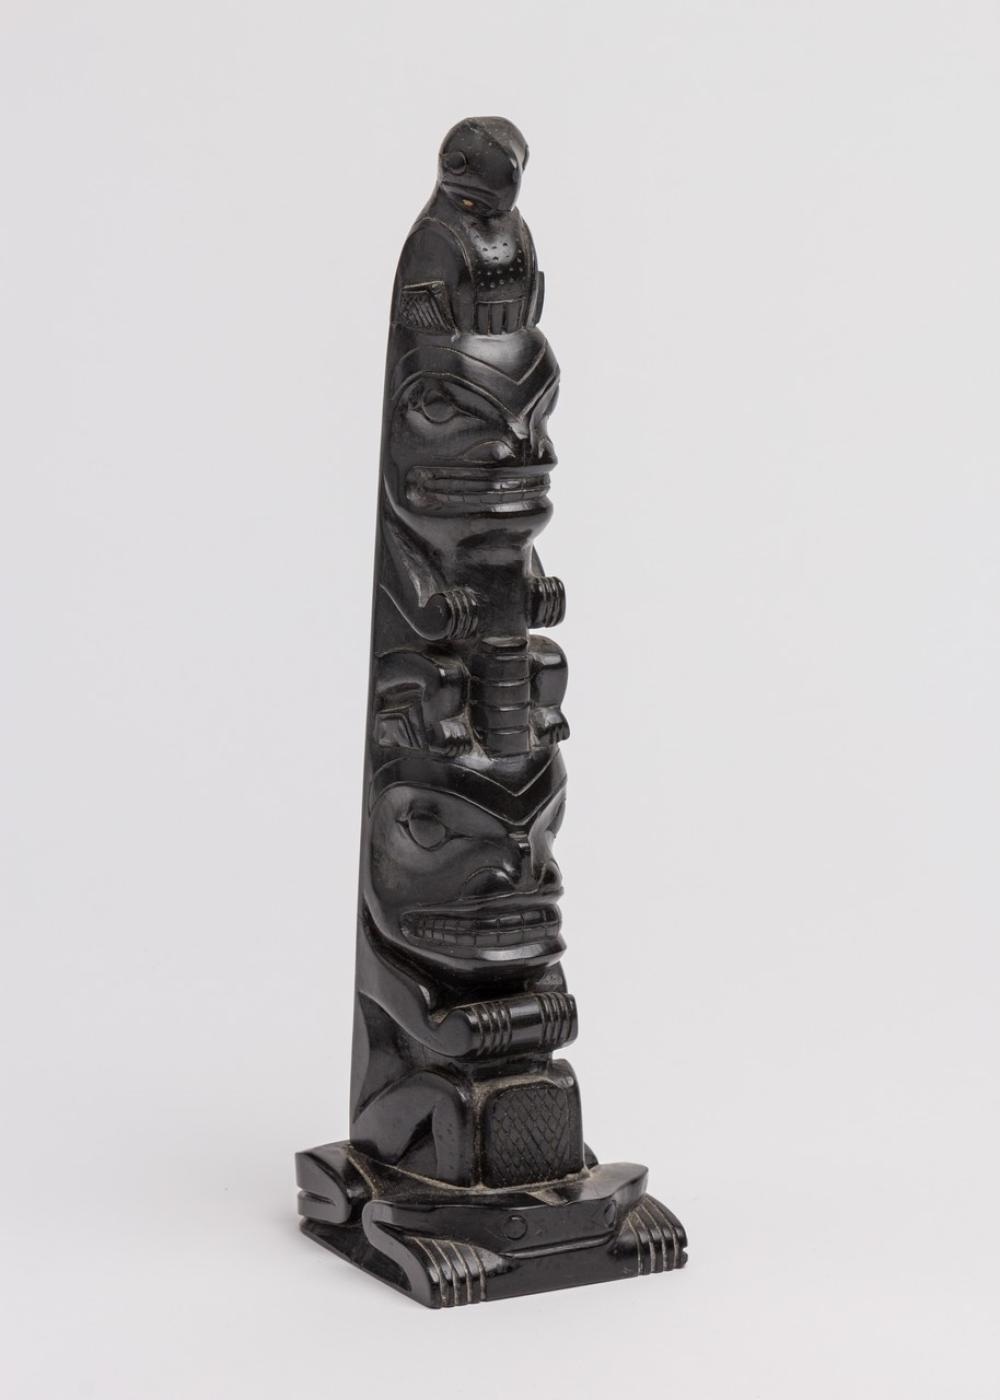 Henry Young, a carved argillite totem pole, 10 1/8 x 2 1/2 x 3 1/8 in. (25.7 x 6.3 x 7.9 cm)